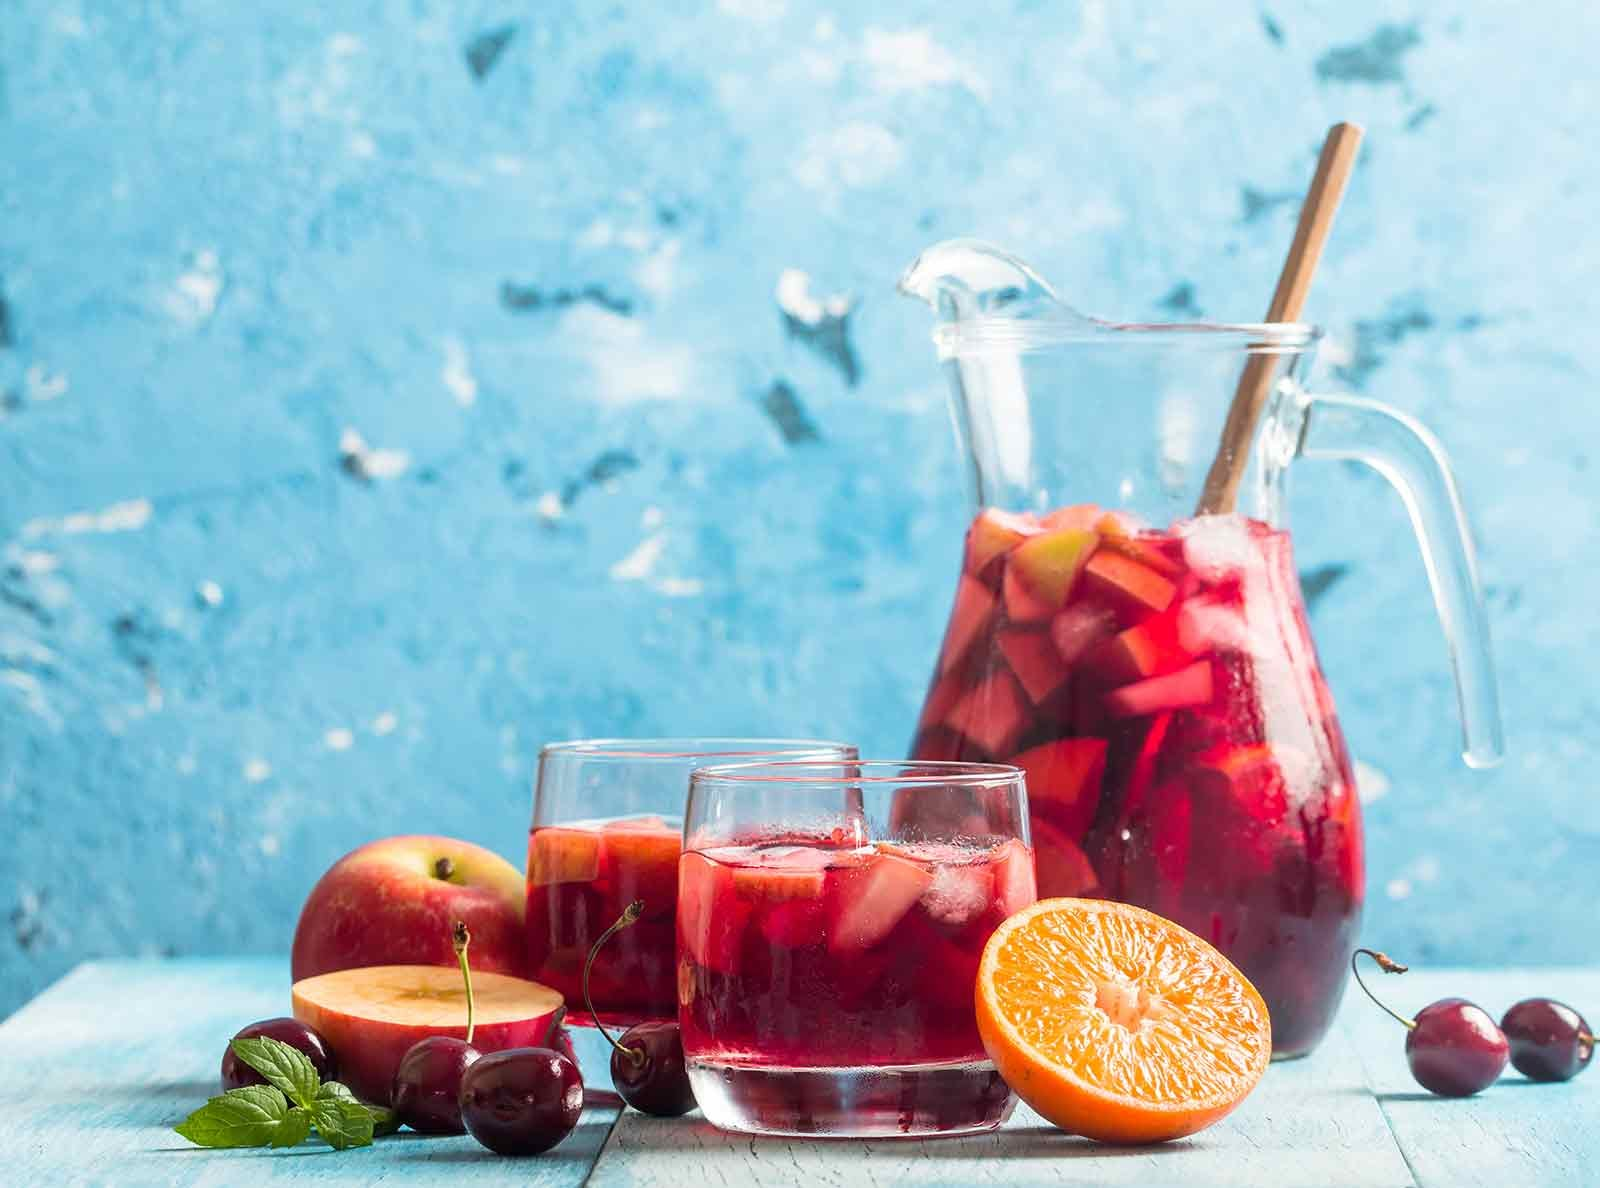 Pitcher of sangria with fruit on a table